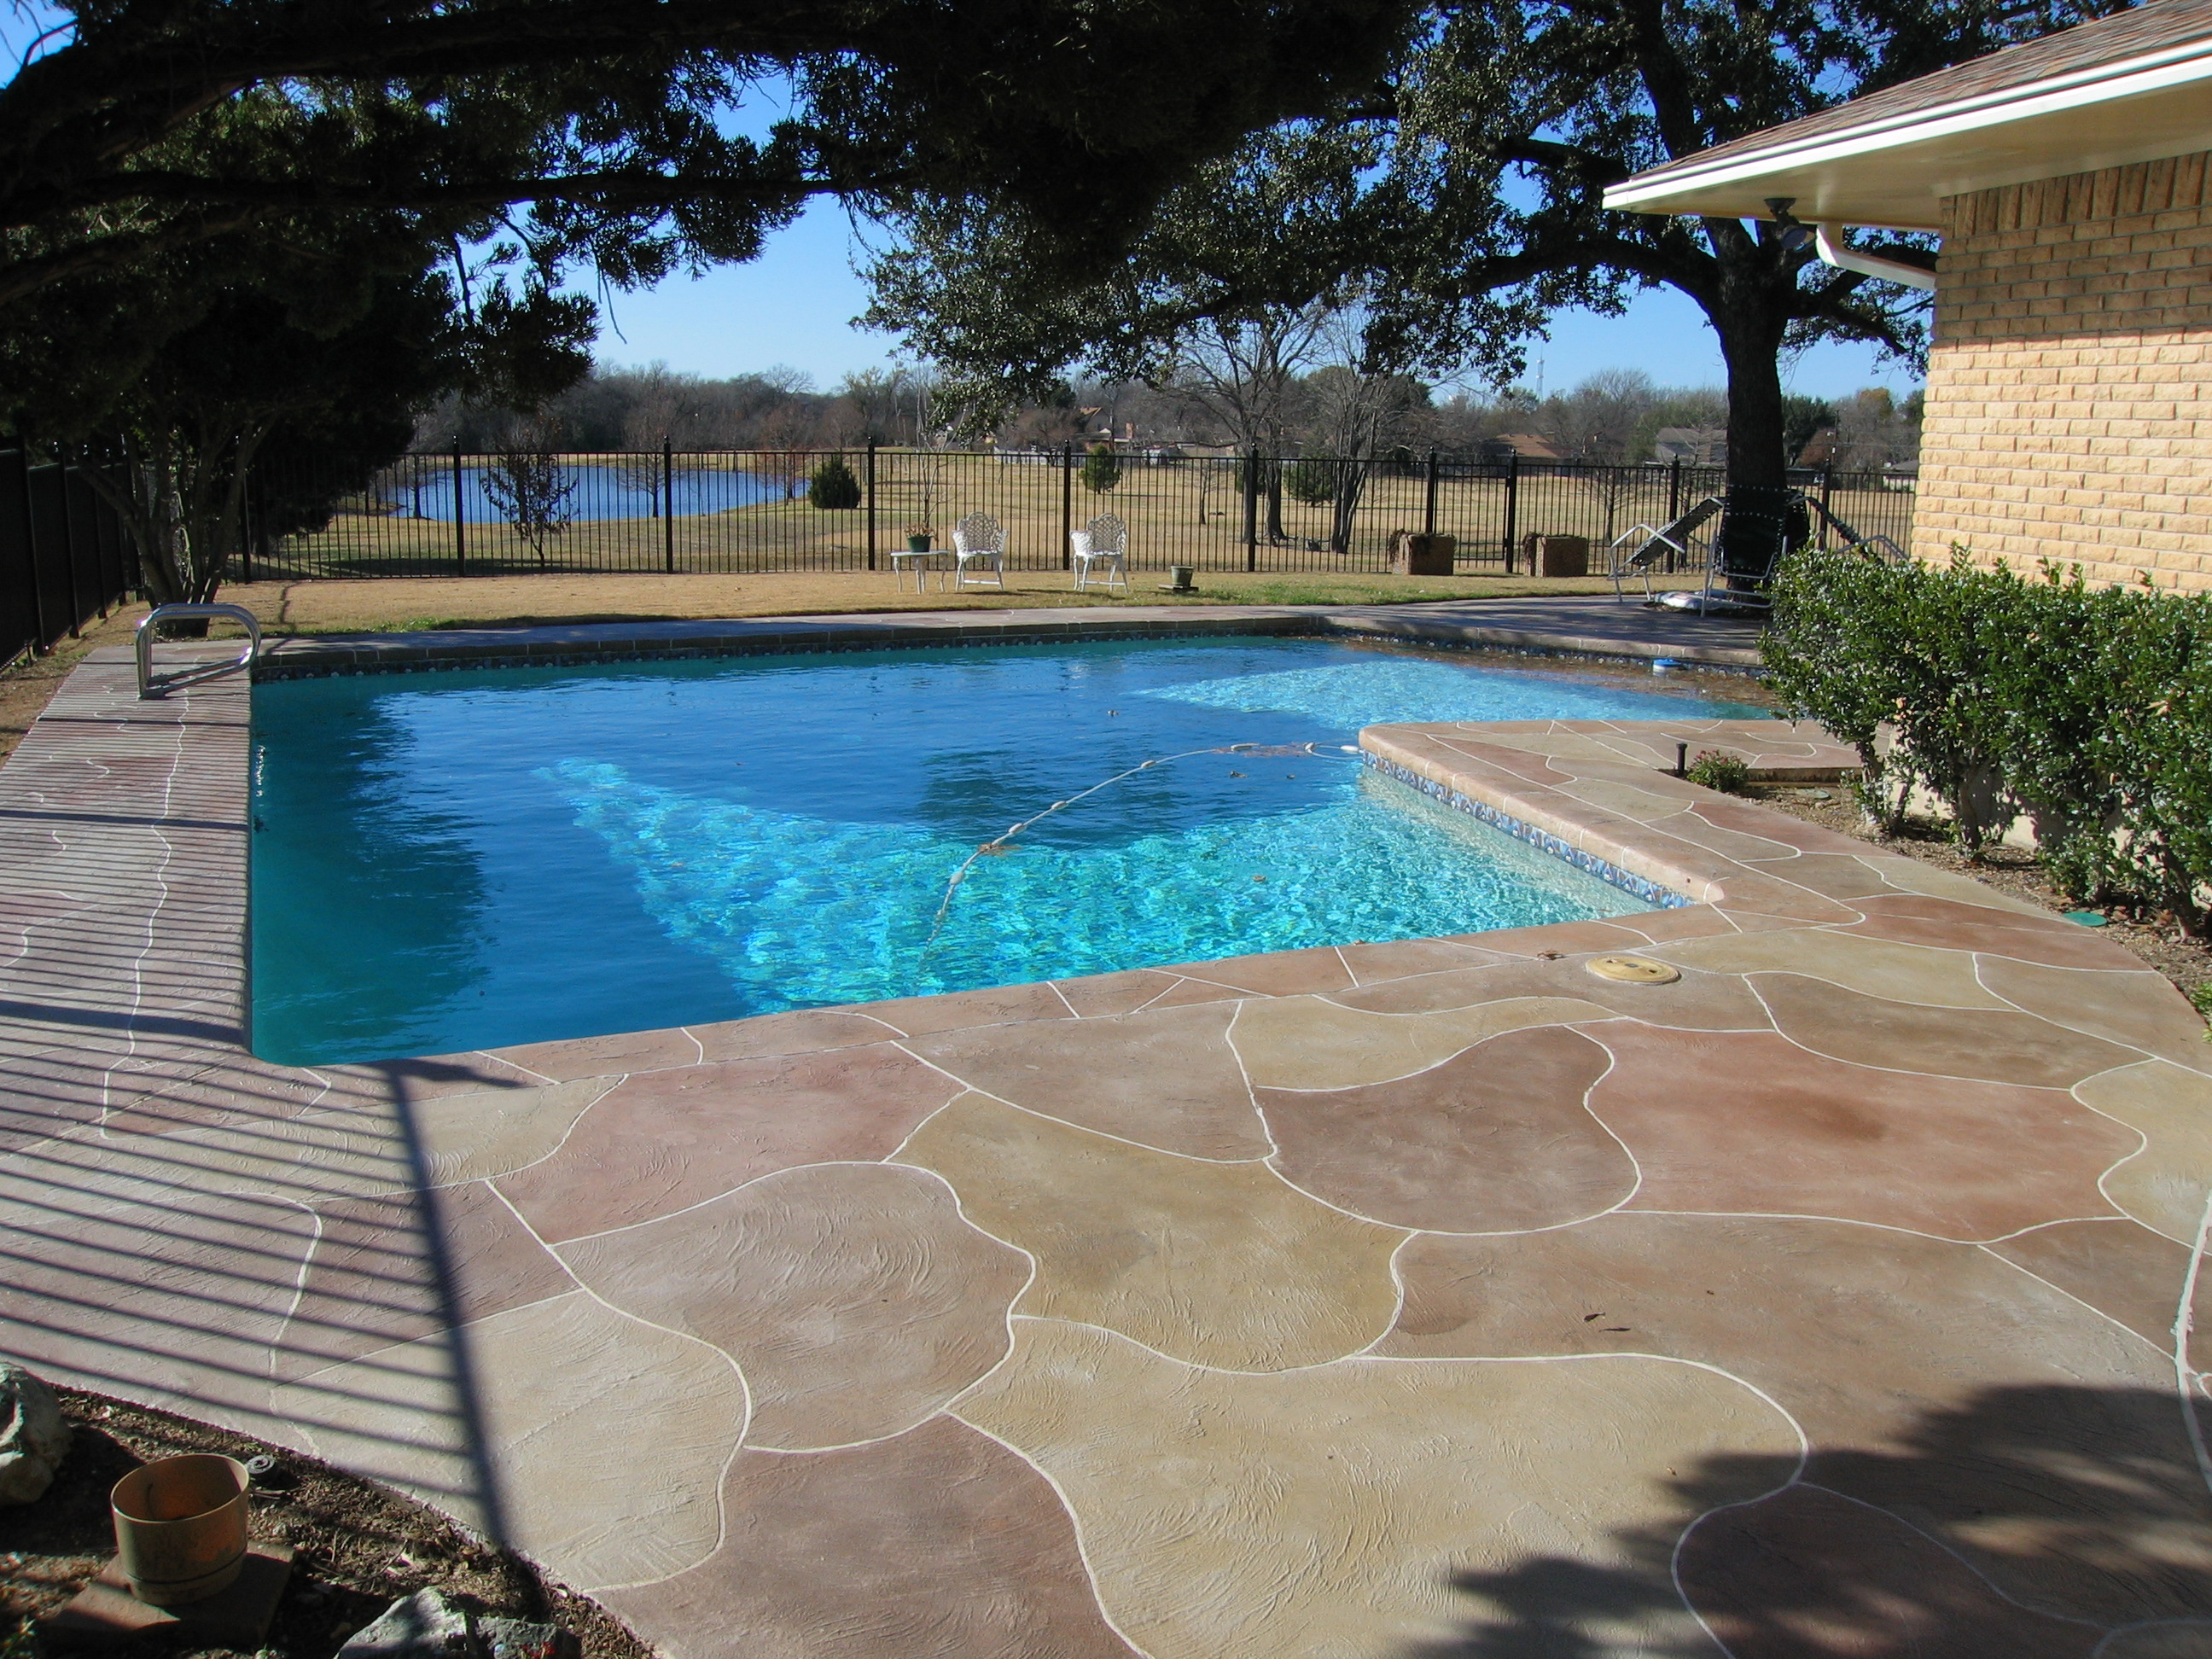 stamped concrete driveway patio design ideas everything you need to know. Black Bedroom Furniture Sets. Home Design Ideas